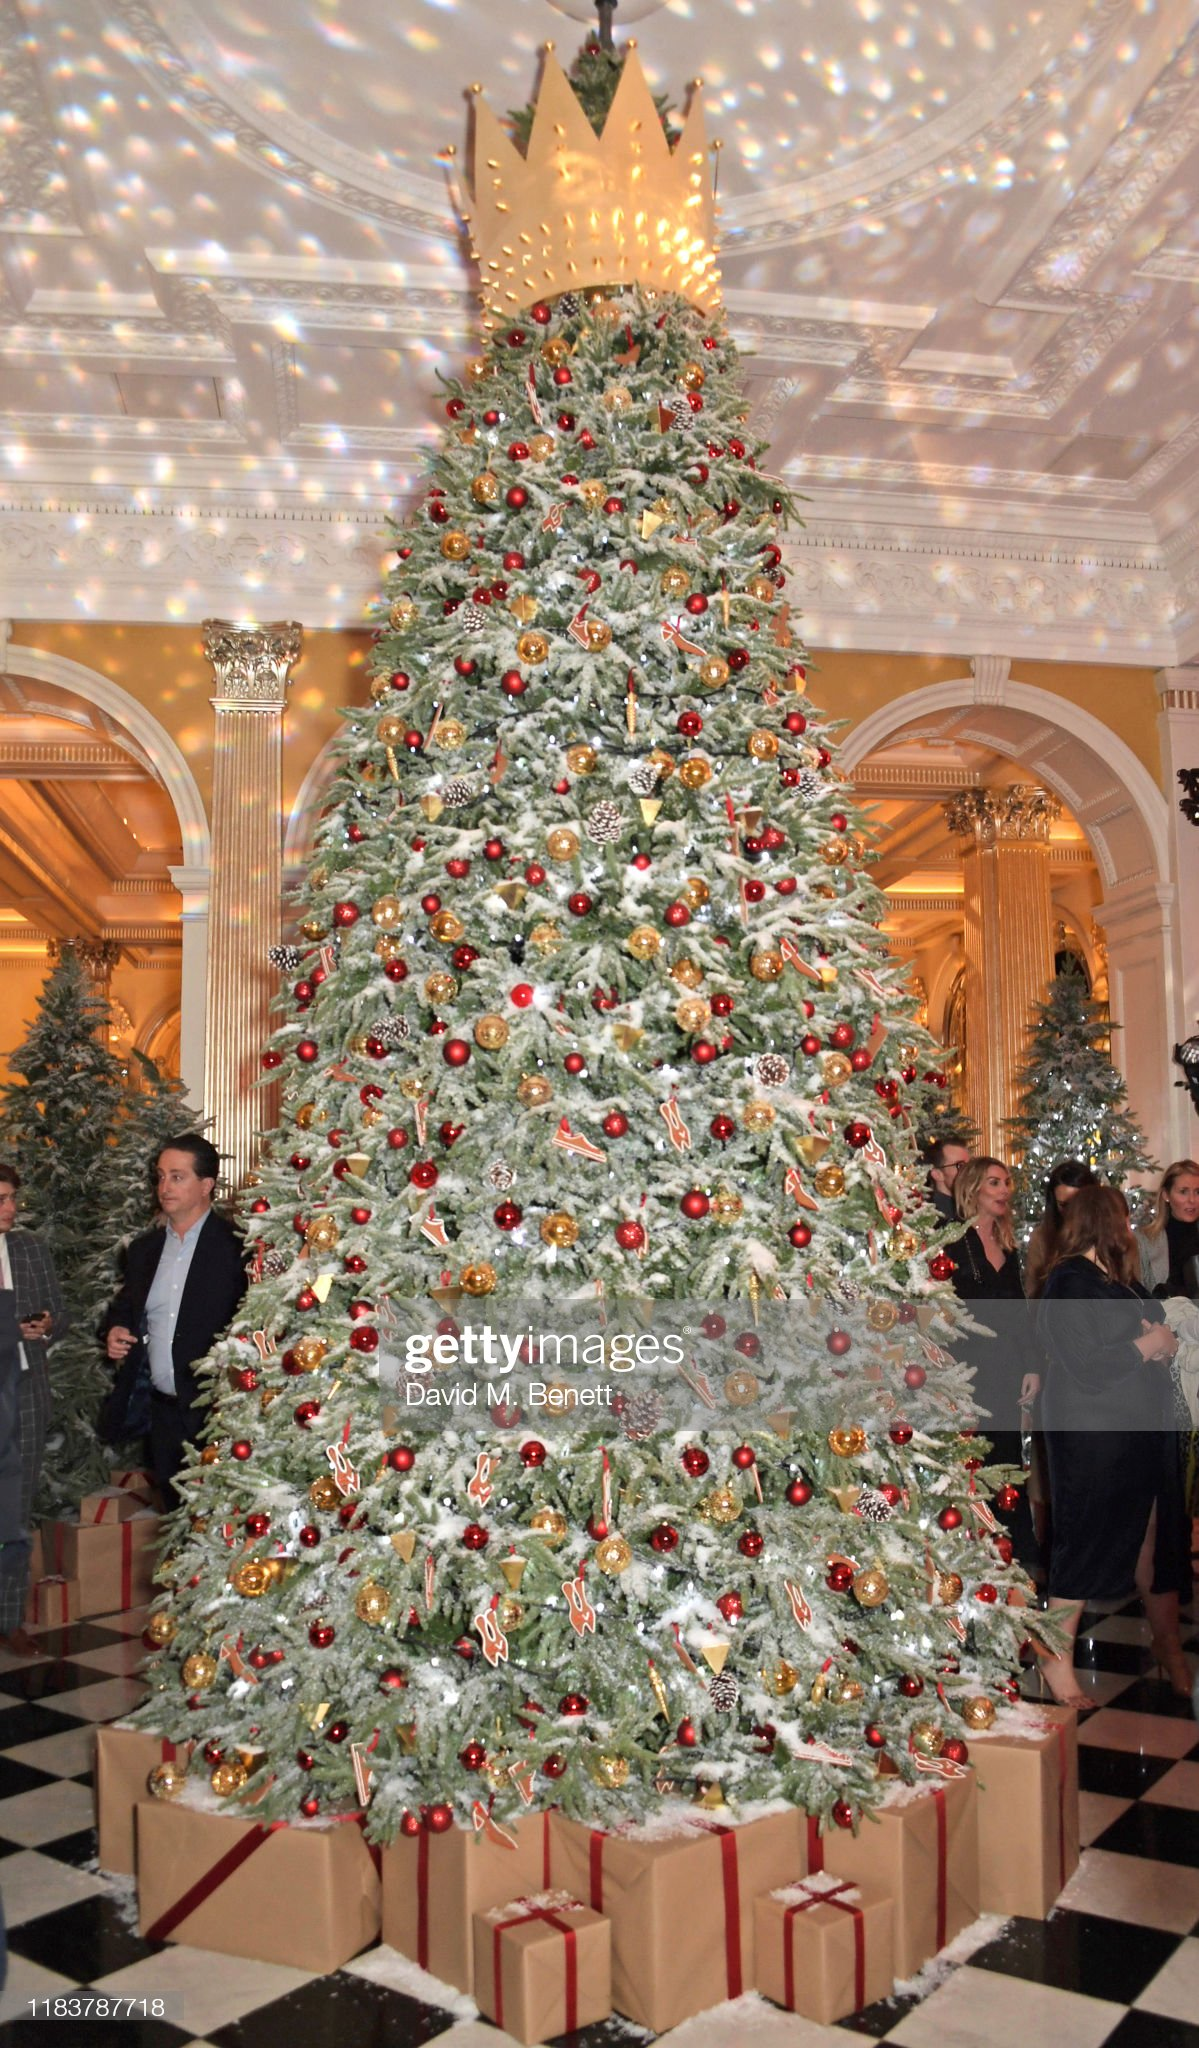 https://media.gettyimages.com/photos/general-view-of-the-atmosphere-at-the-launch-of-the-claridges-tree-picture-id1183787718?s=2048x2048